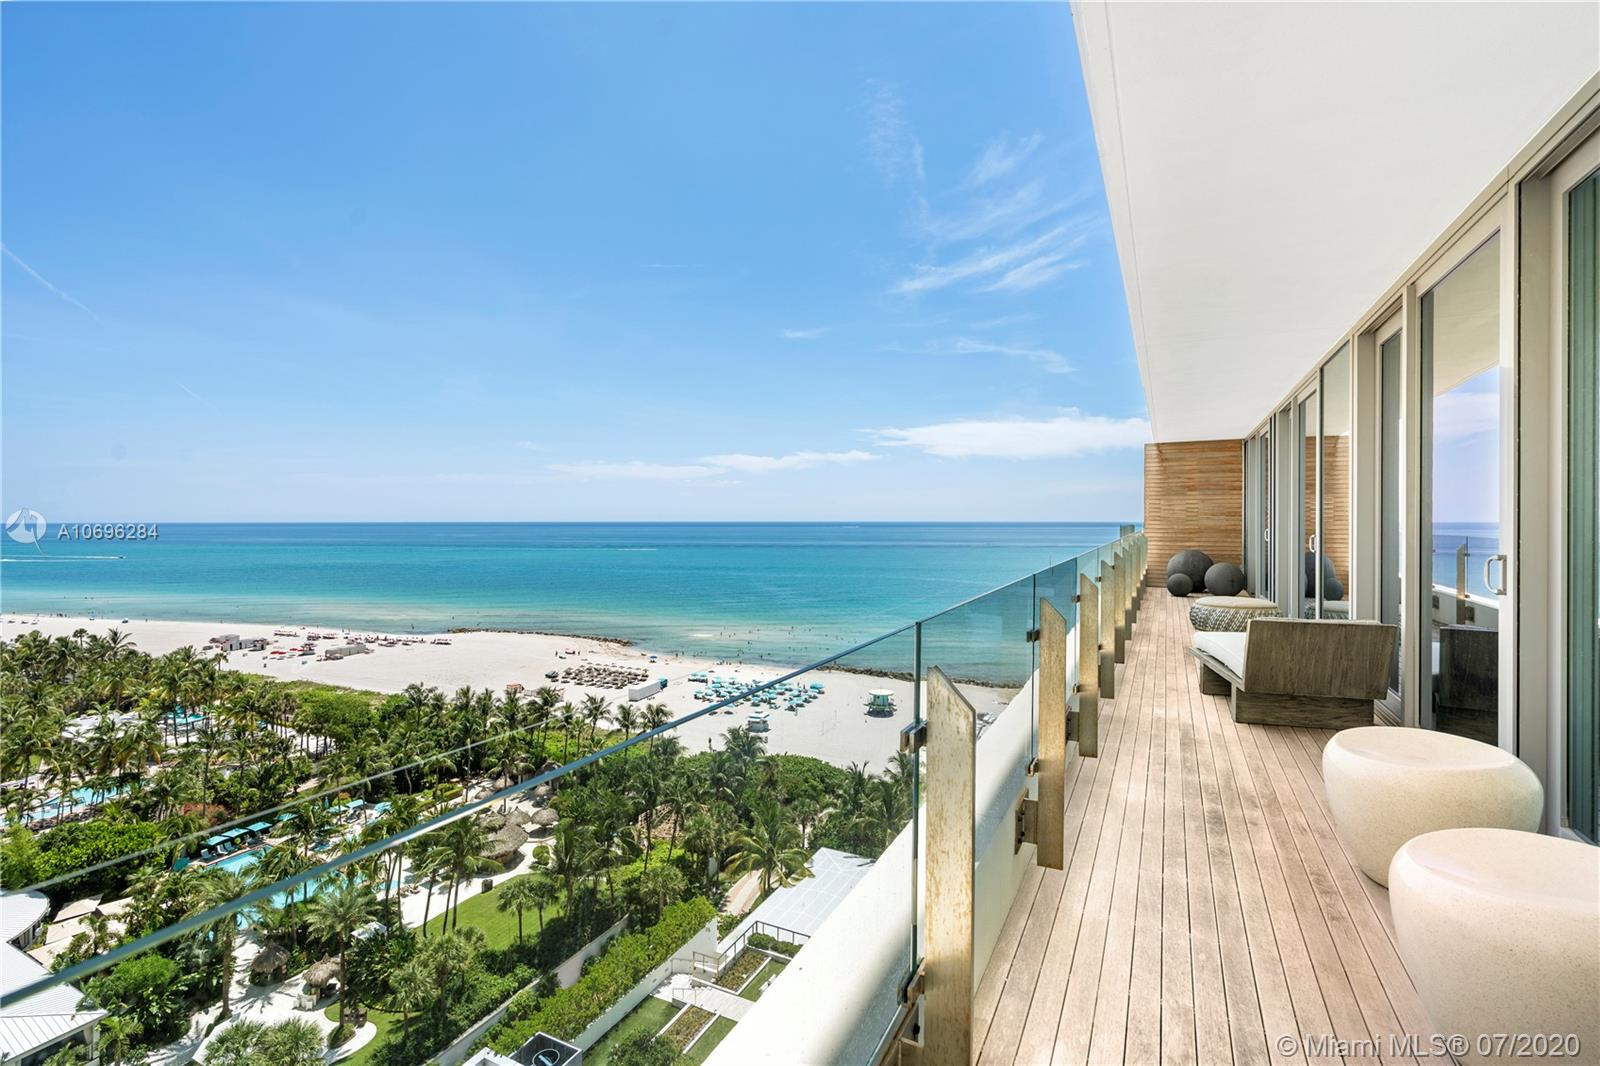 Edition Residences, a private Residence component of Edition Hotel in Miami Beach. Only 26 units. Ian Schrager & John Pawson conceived lifestyle space. Furnished 2 Bedroom/ 2 Bathroom Home In The Sky with Ocean Views. The Residences are part of The Miami Beach Edition; however, Residences have their own dedicated private entrance as well as an anonymous celebrity entrance, for ultimate privacy. Exclusive access to all services, privileges and amenities of the Edition Hotel….from Jean-Georges on-property restaurant to world renowned spa, bowling alley, and ice-skating rink. Spend the day at the pool or beach and call this property your home.